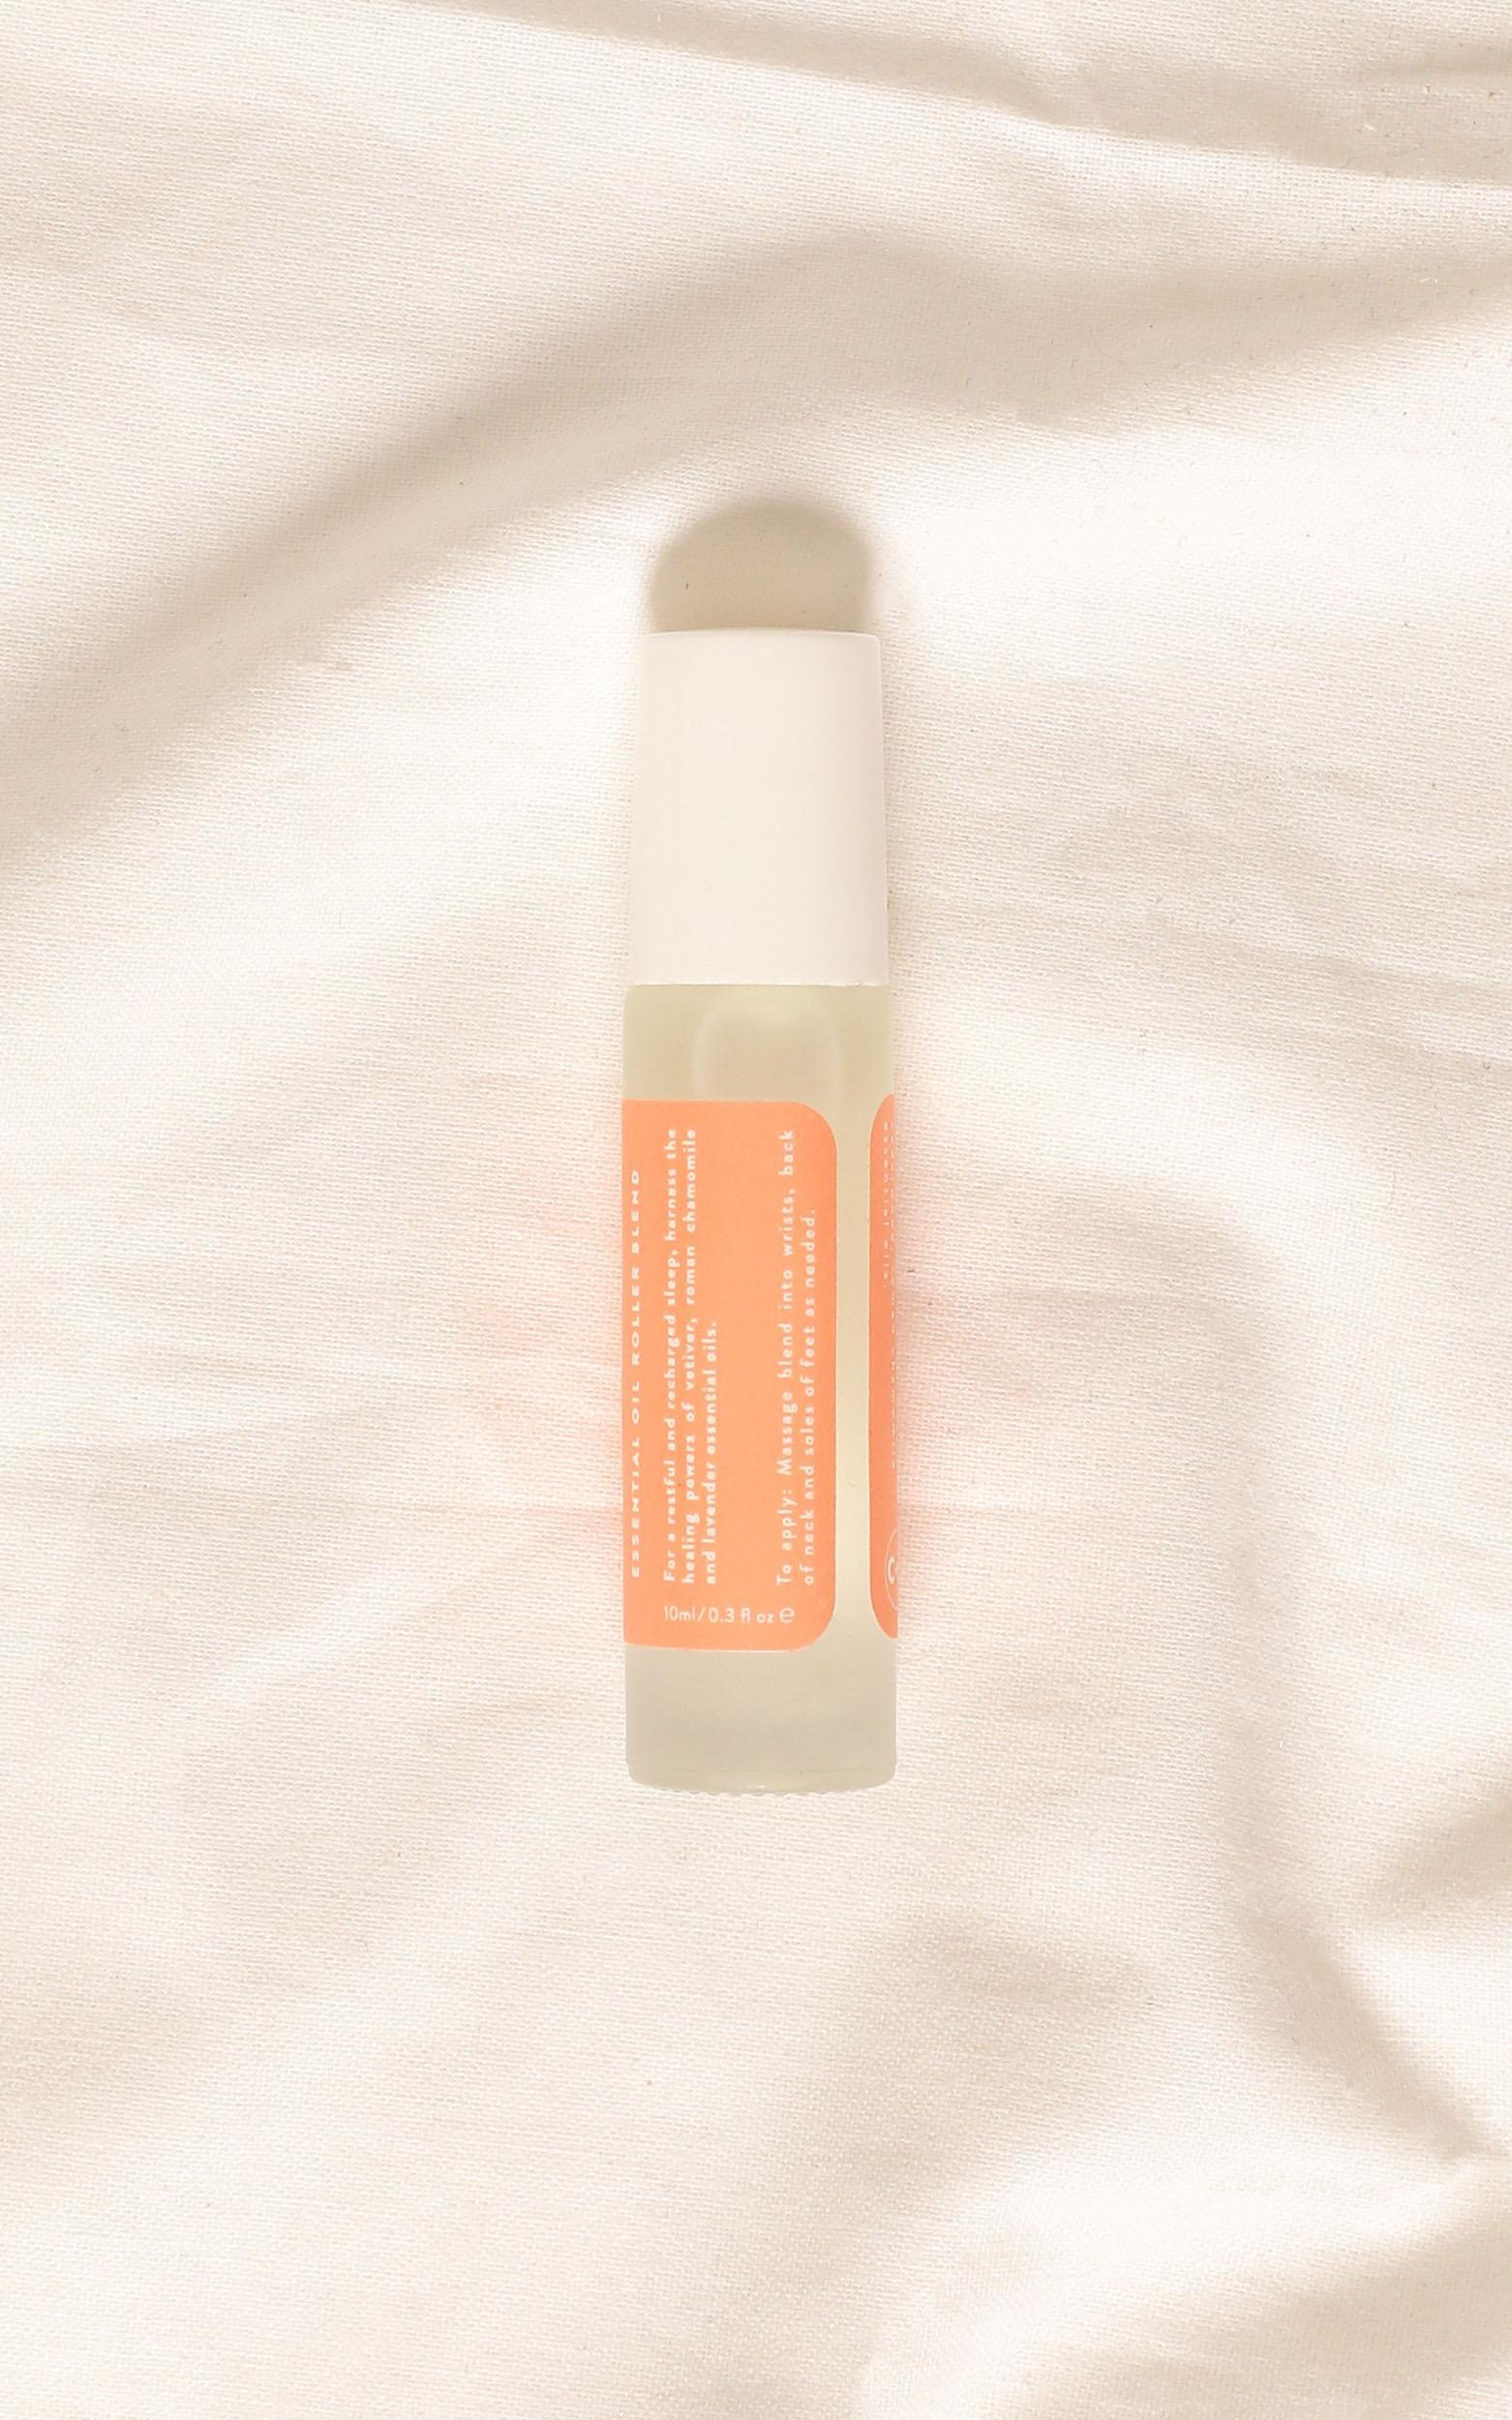 Courtney + Babes - Sleep Wellness Roller 10ml, Clear, hi-res image number null